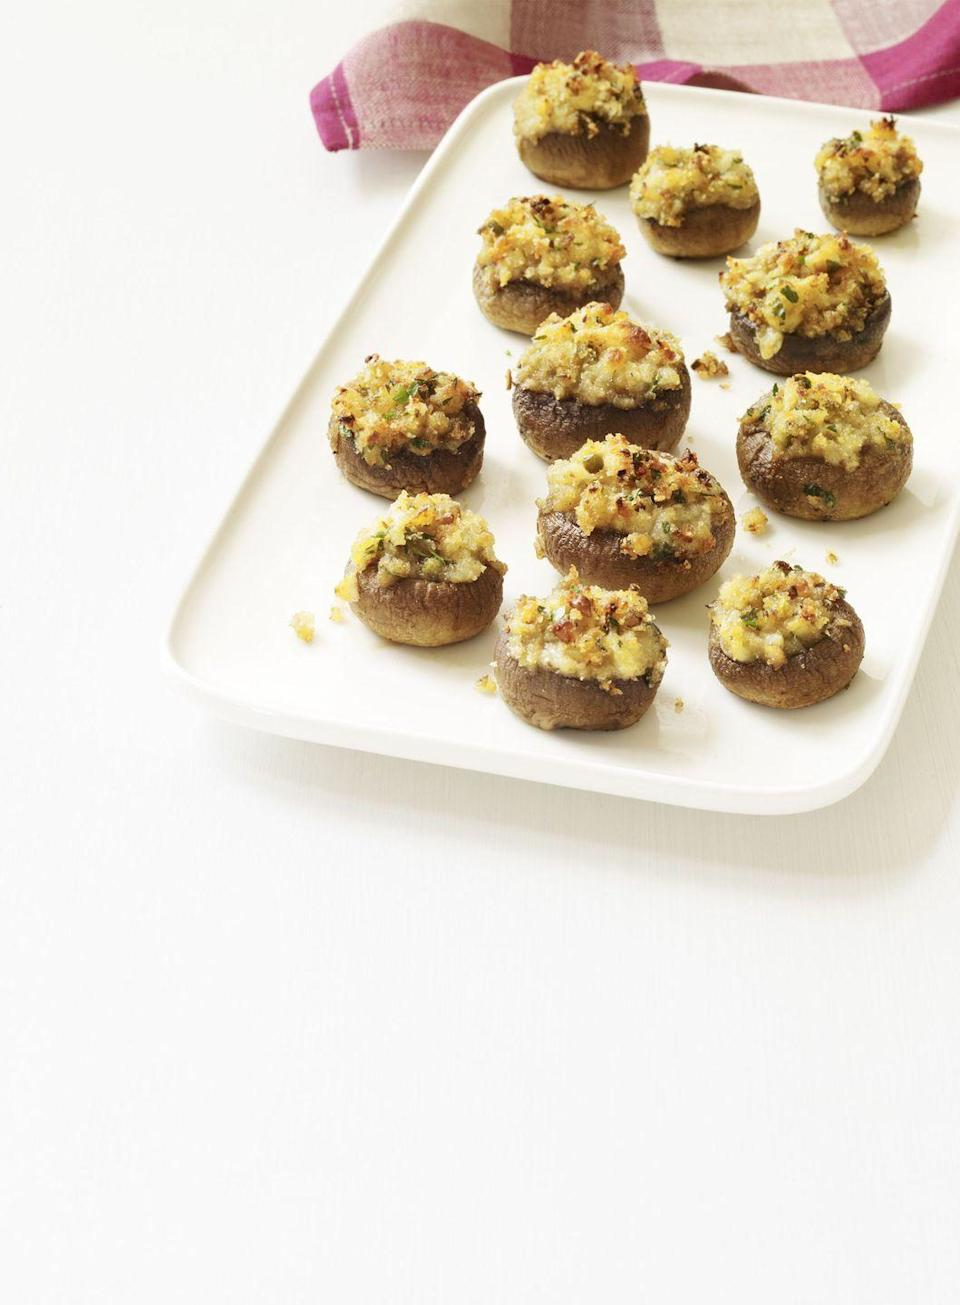 """<p>The secret ingredient that makes these bite-sized shrooms so flavorful isn't the white wine or the lemon juice — it's the minced clams.</p><p><a href=""""https://www.womansday.com/food-recipes/food-drinks/recipes/a11418/stuffed-mushrooms-recipe-wdy1113/"""" rel=""""nofollow noopener"""" target=""""_blank"""" data-ylk=""""slk:Get the Stuffed Mushrooms recipe."""" class=""""link rapid-noclick-resp""""><em><strong>Get the Stuffed Mushrooms recipe.</strong></em></a></p>"""